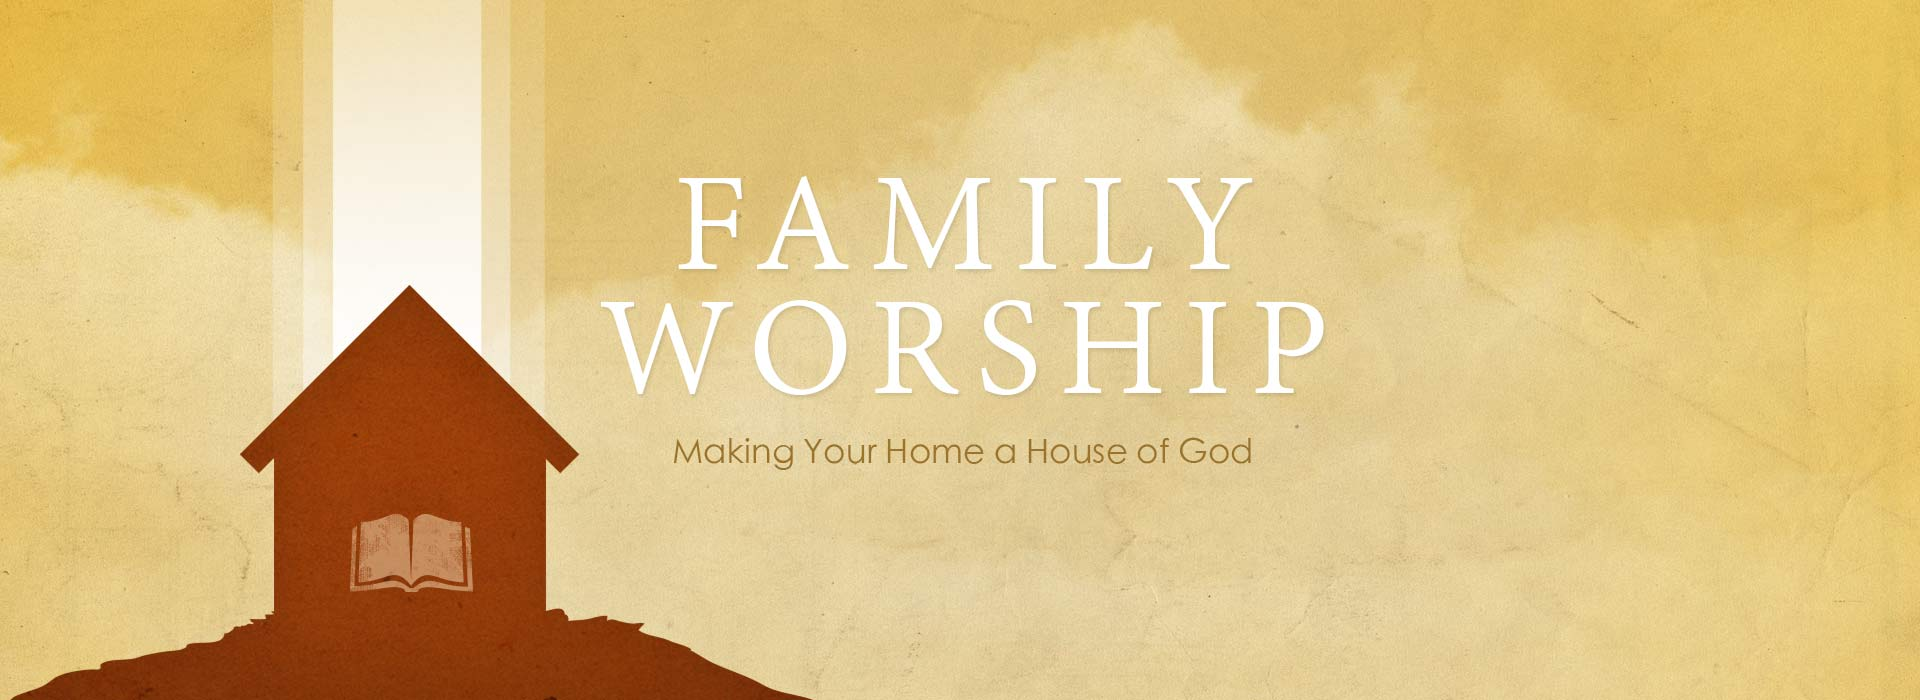 slide-family-worship